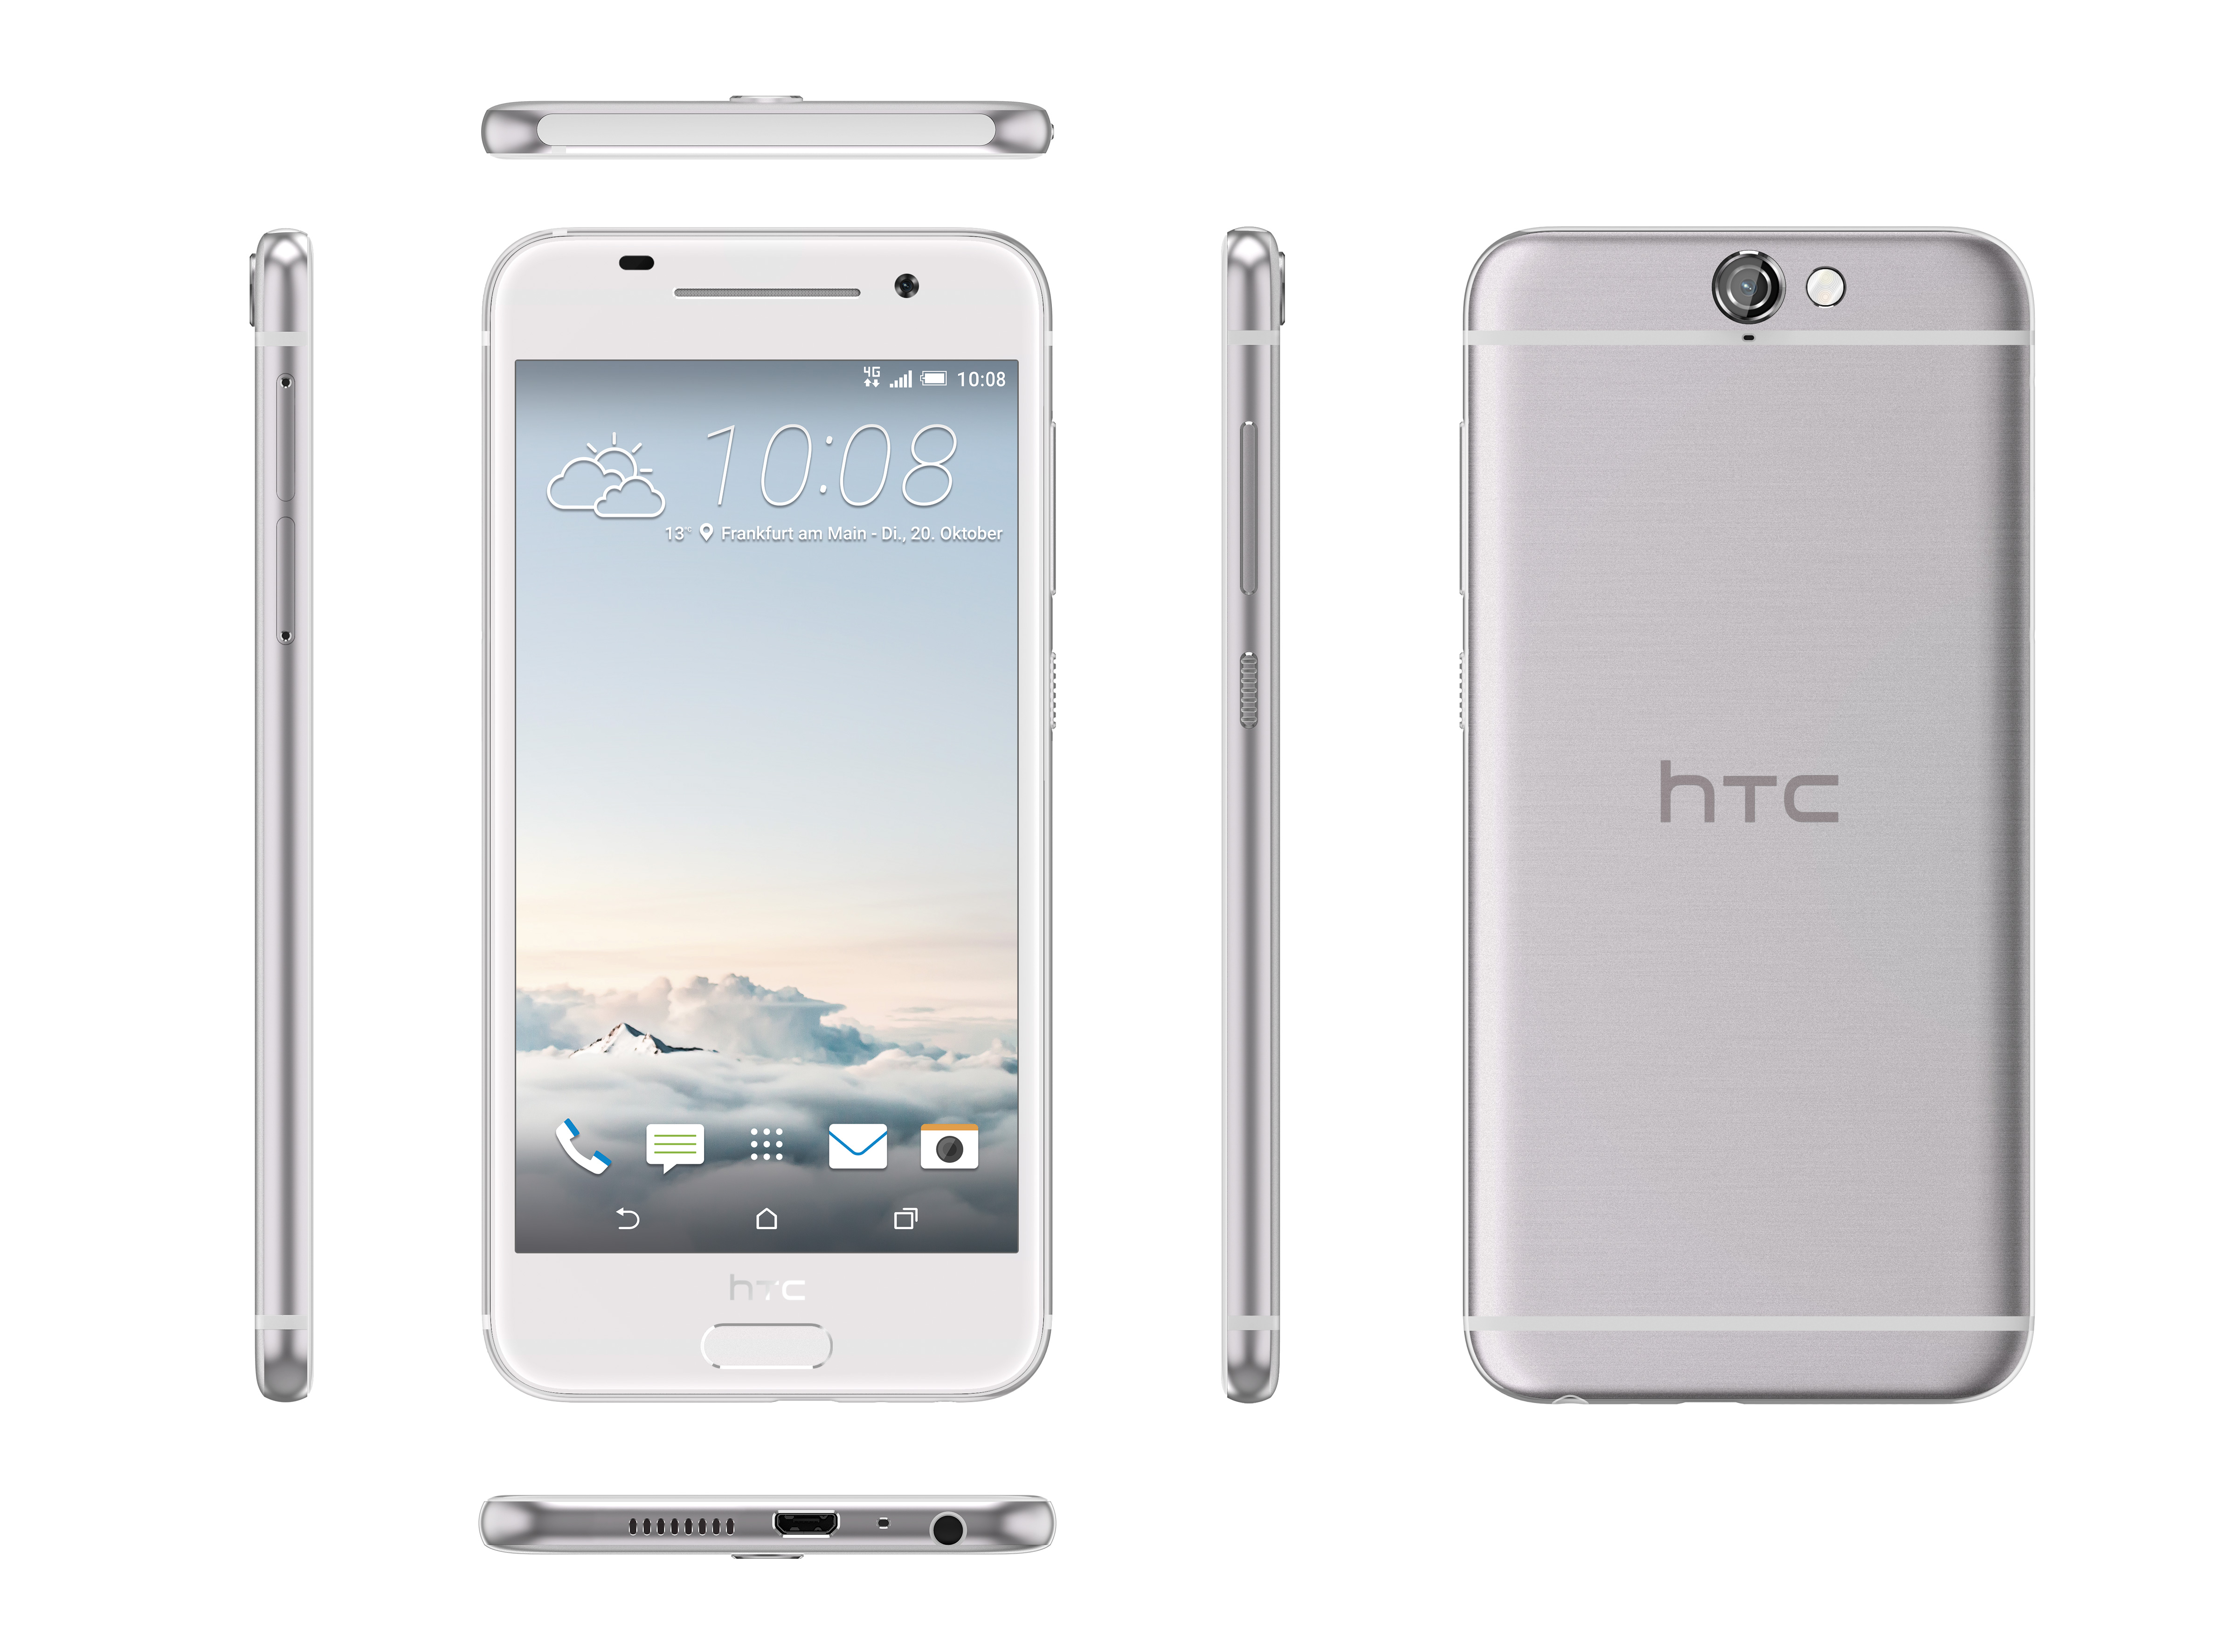 HTC-One-A9-Press-Images-10